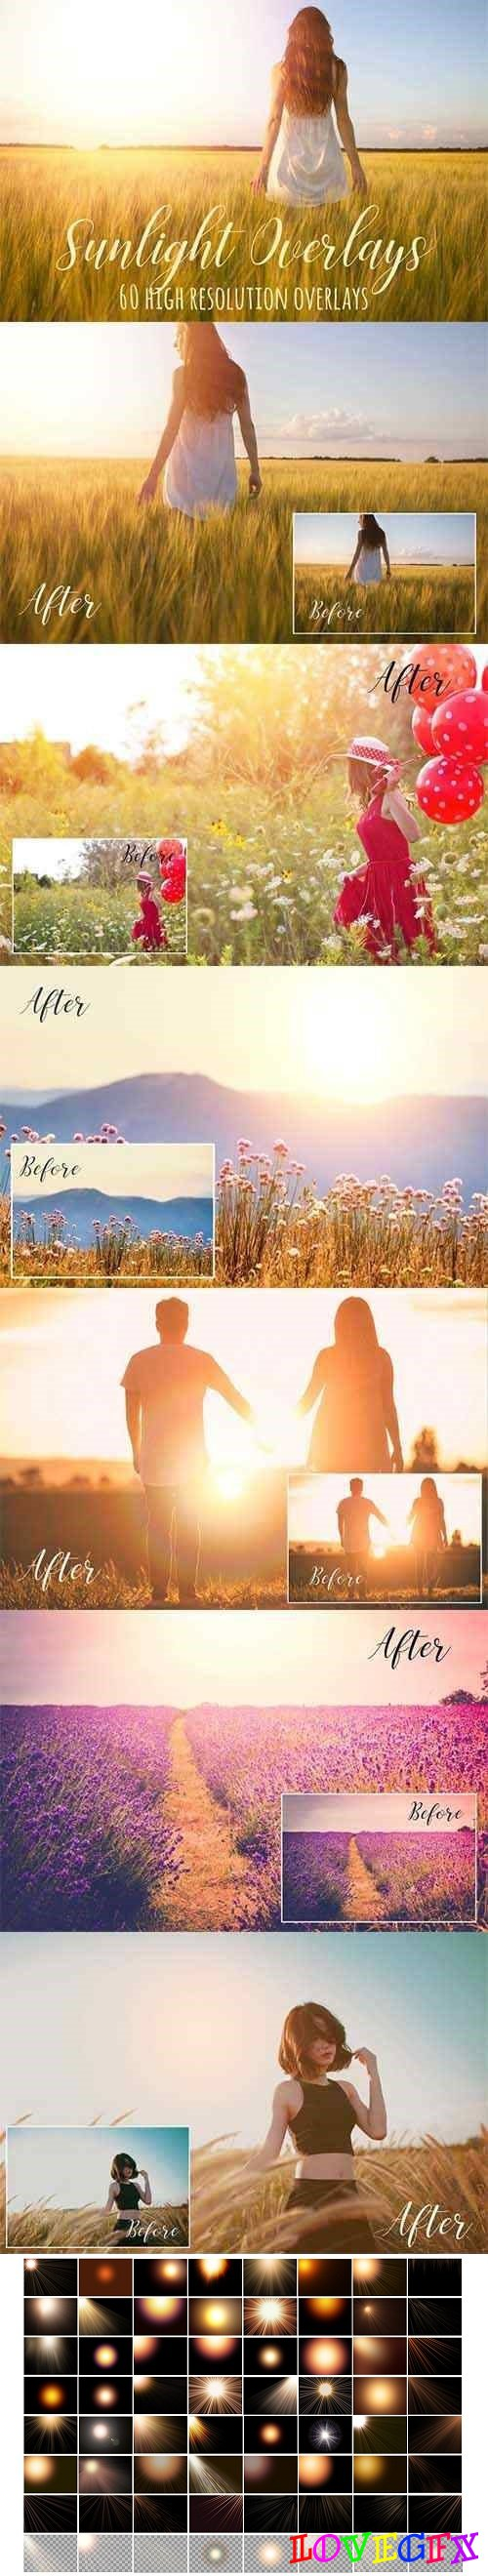 Sunlight photoshop overlays - 2705177